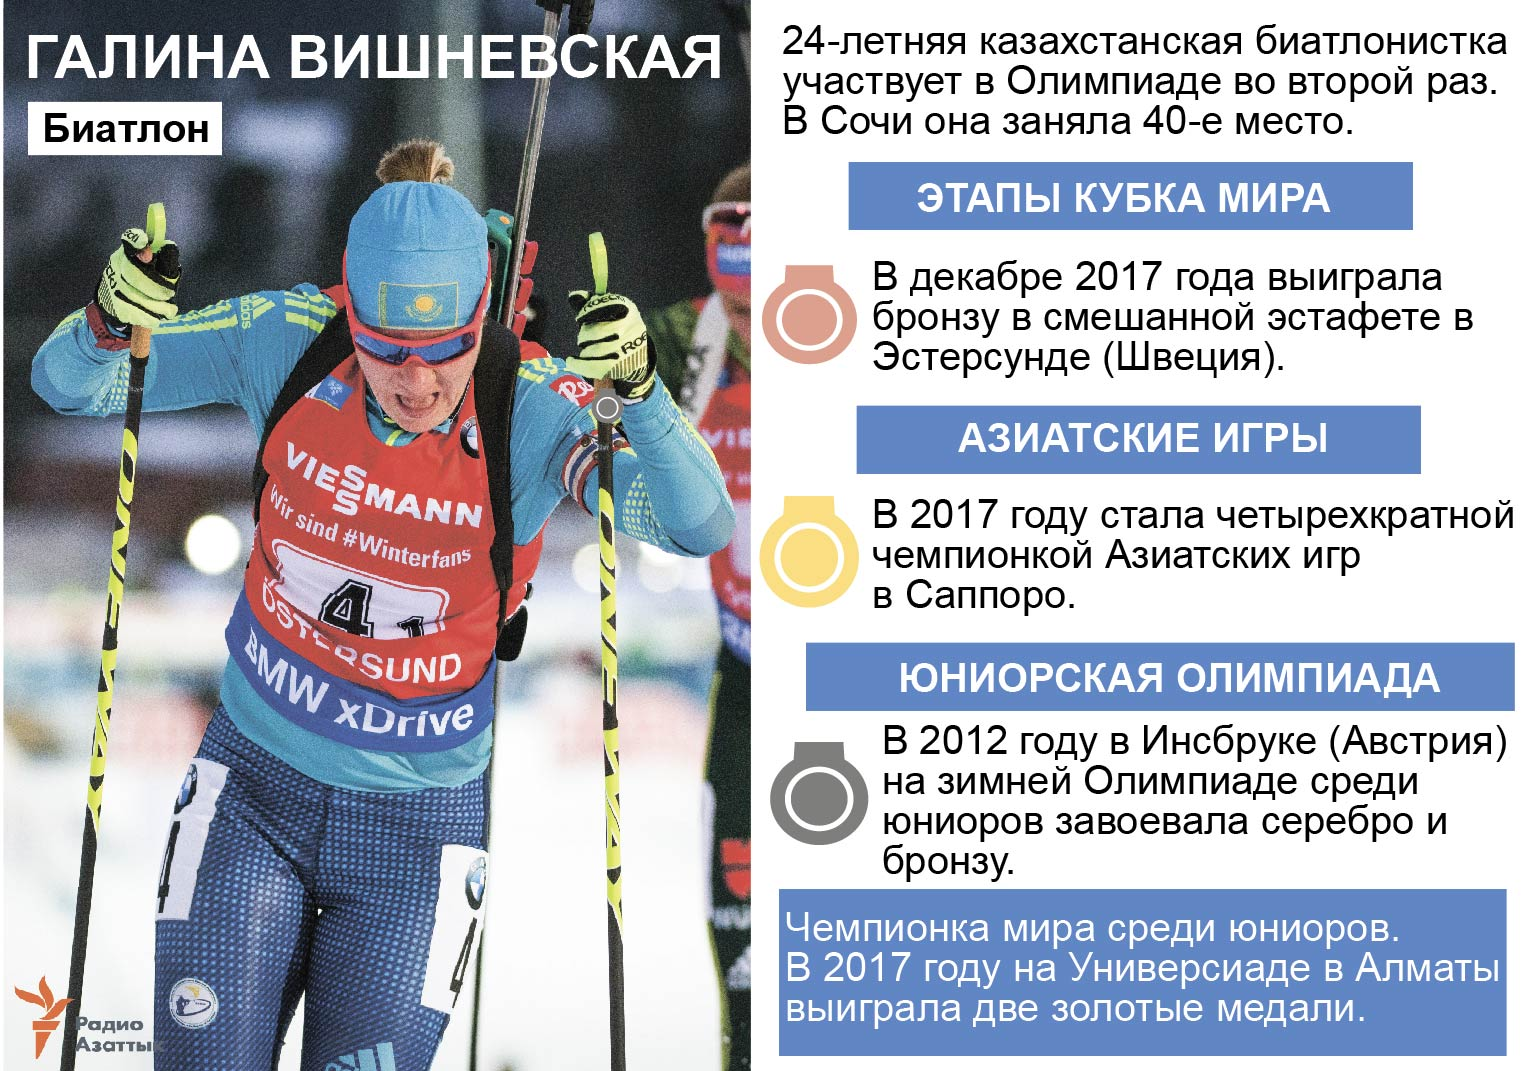 infographic about Galina Vishnevskaya